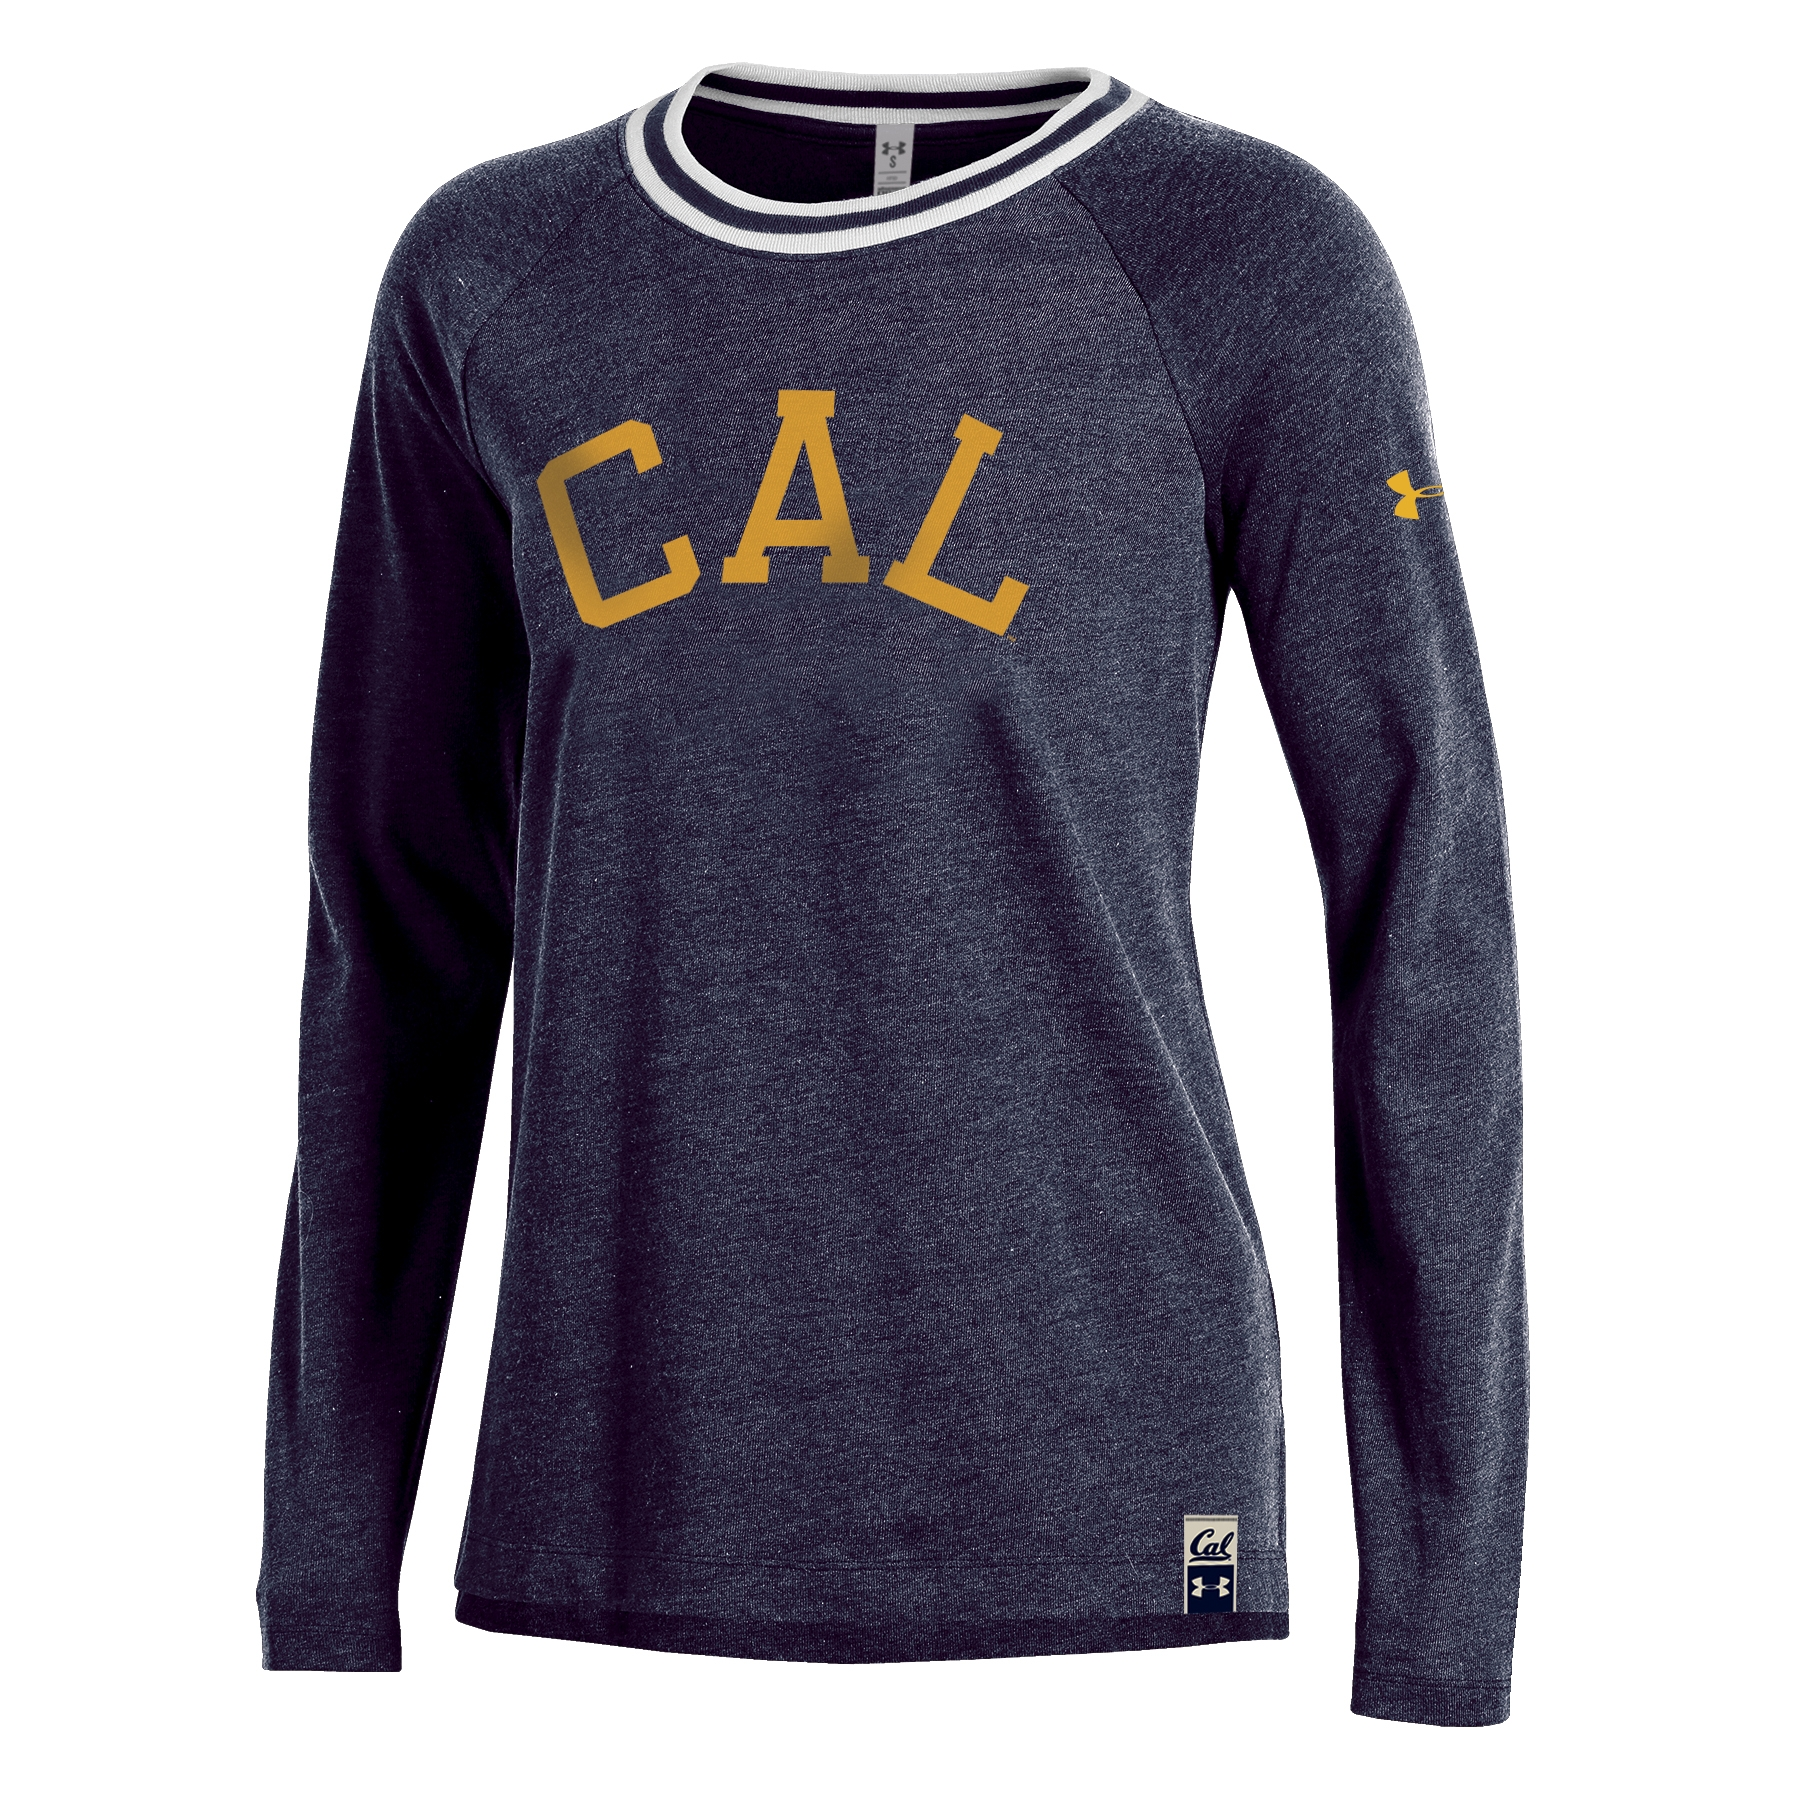 University of California Berkeley Under Armour Womens Iconic Rugby Jersey LS Tee